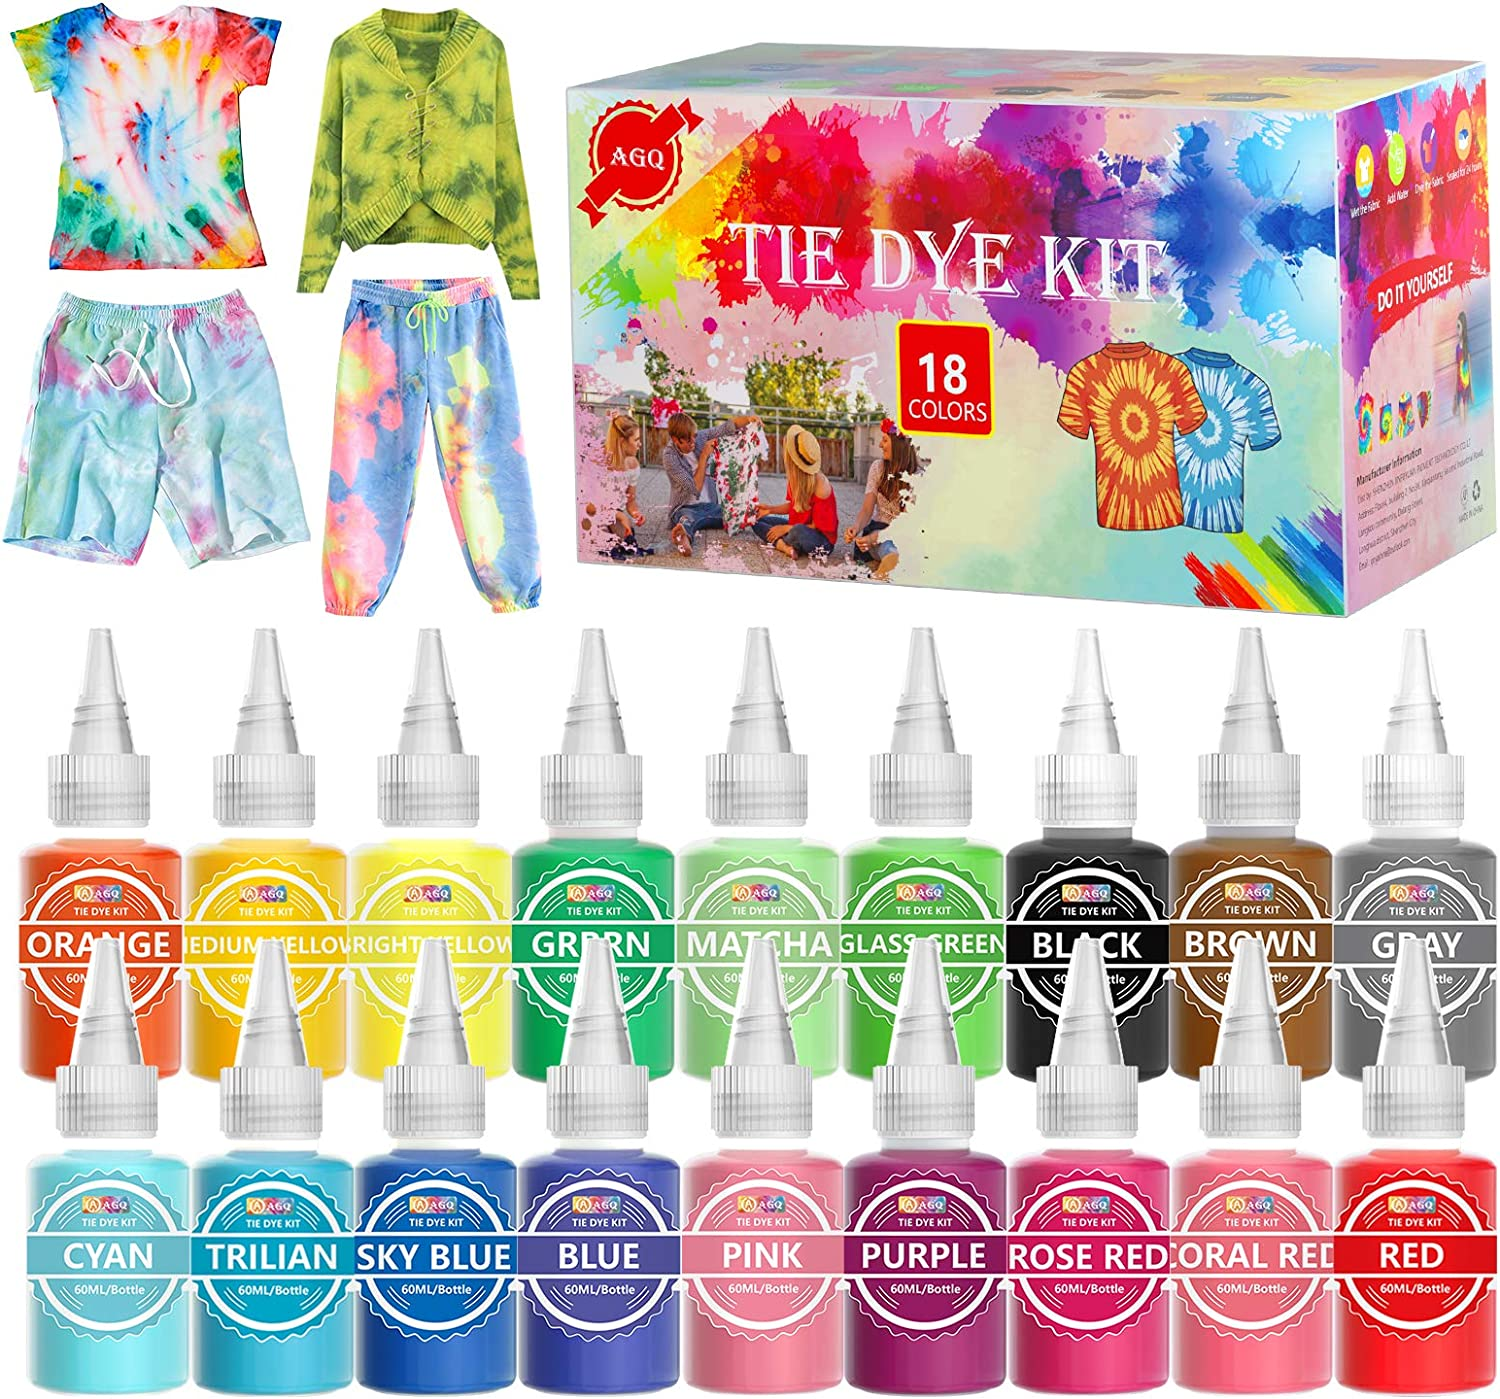 Tie Dye Kit 18 Colors DIY Kids Adults Fa 5 ☆ very popular Sets for Store Fabric